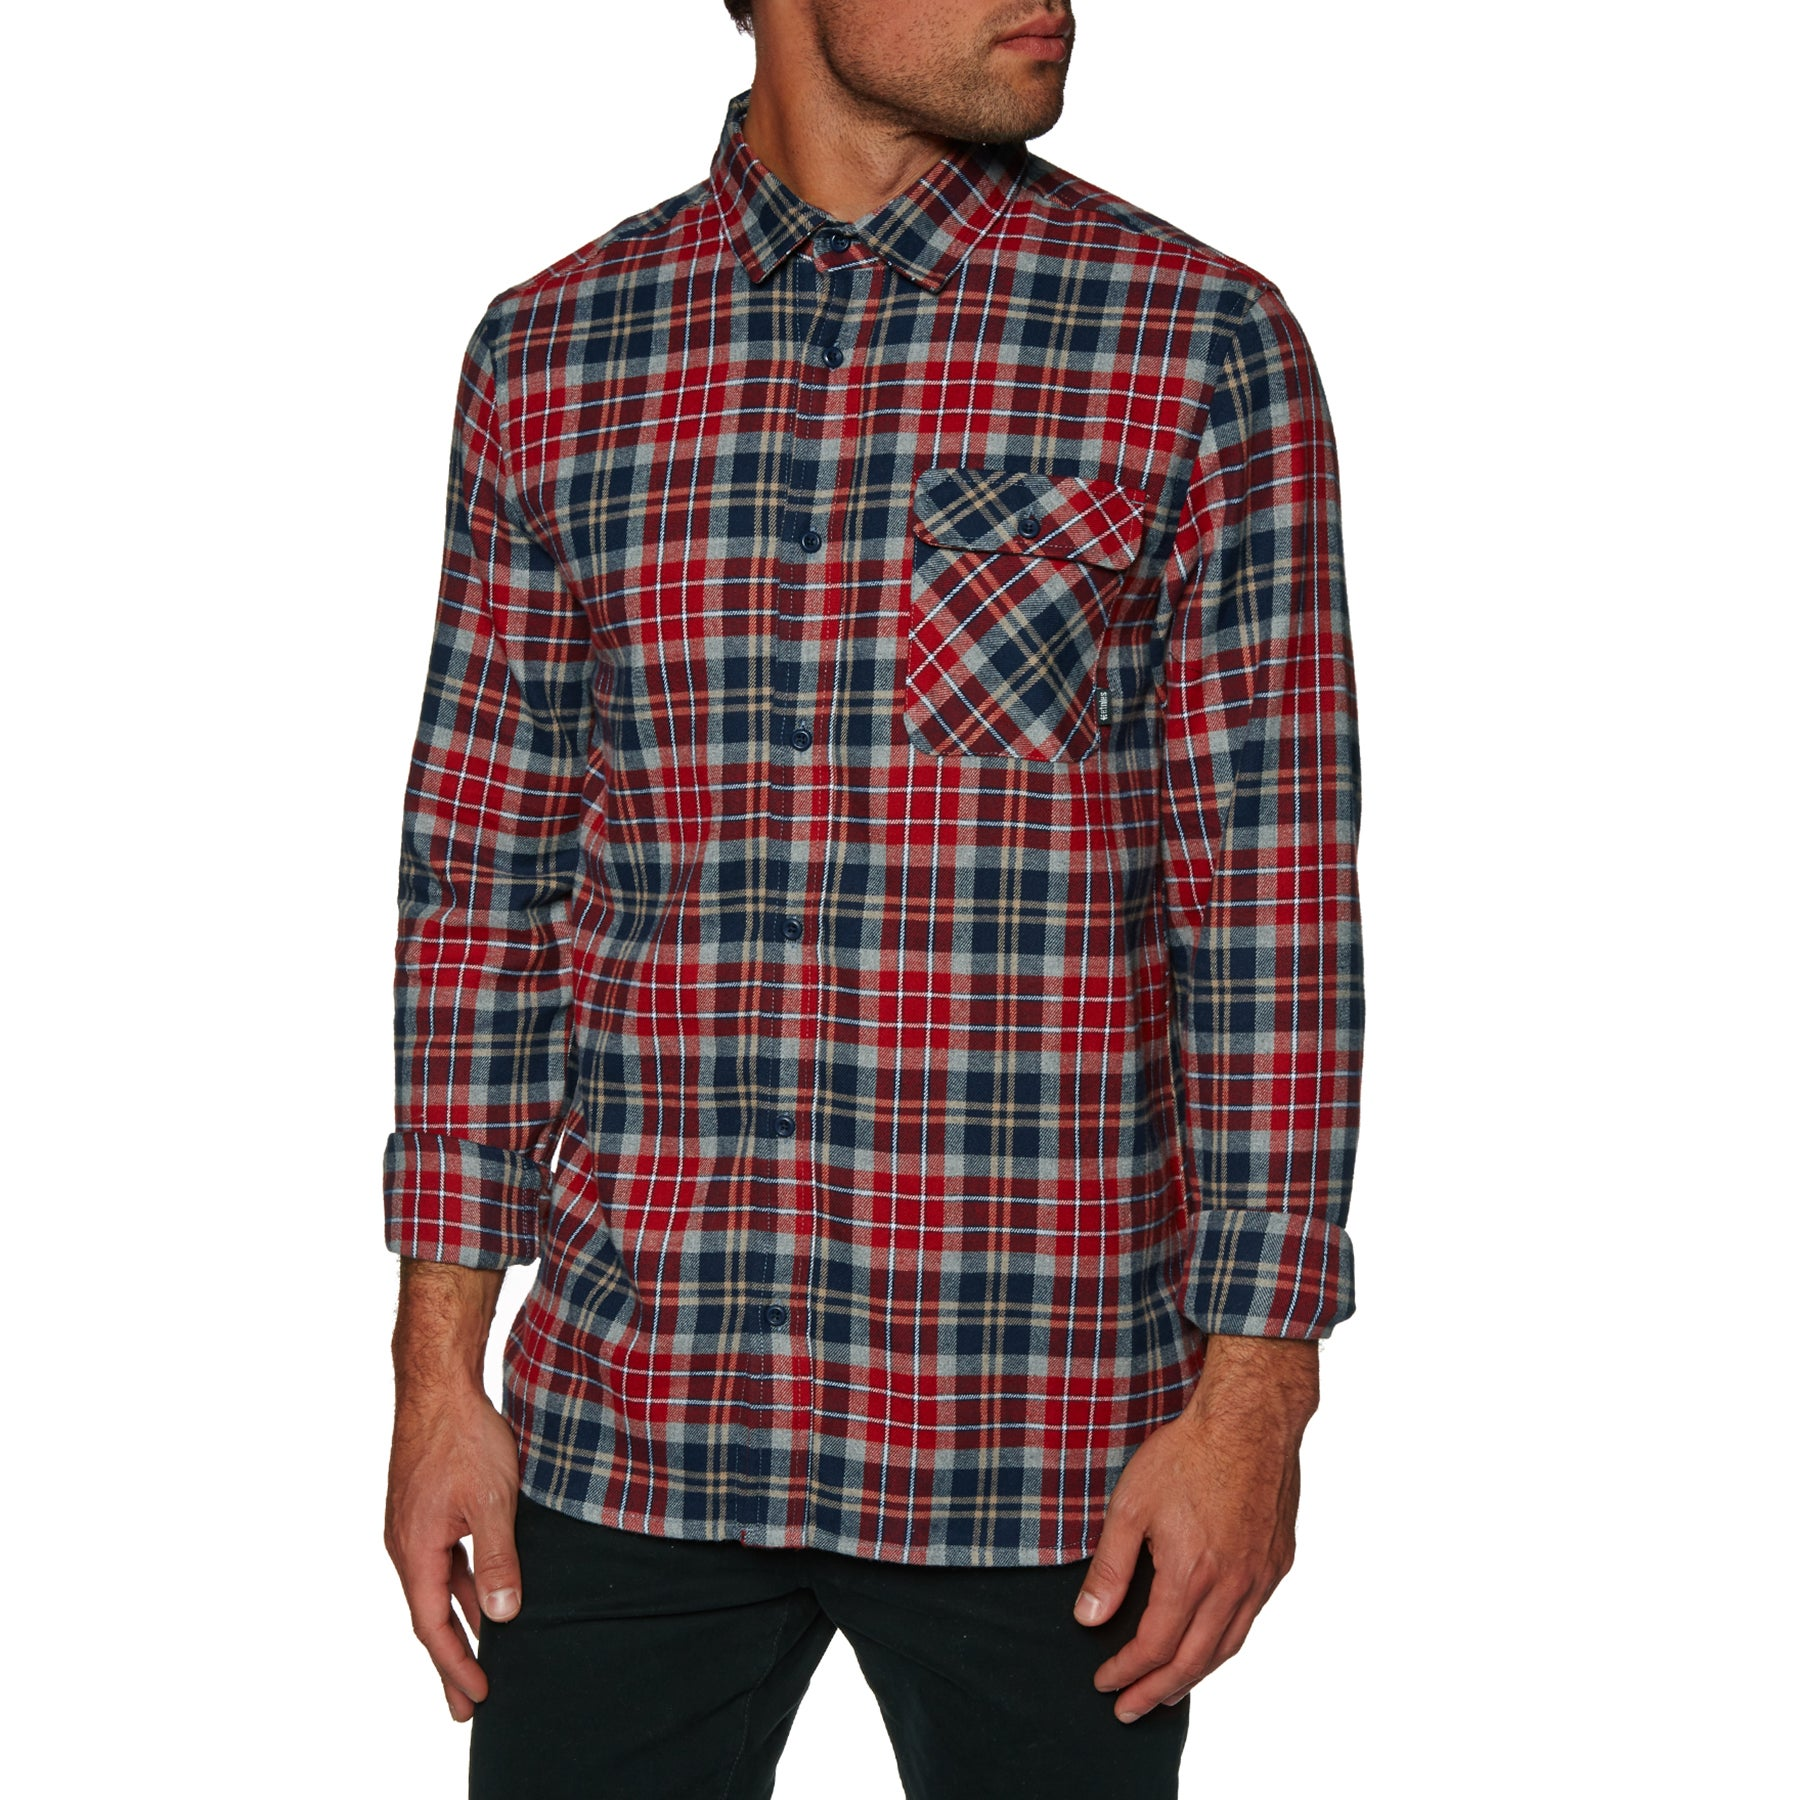 Etnies Axel Flannel Shirt - Red/navy